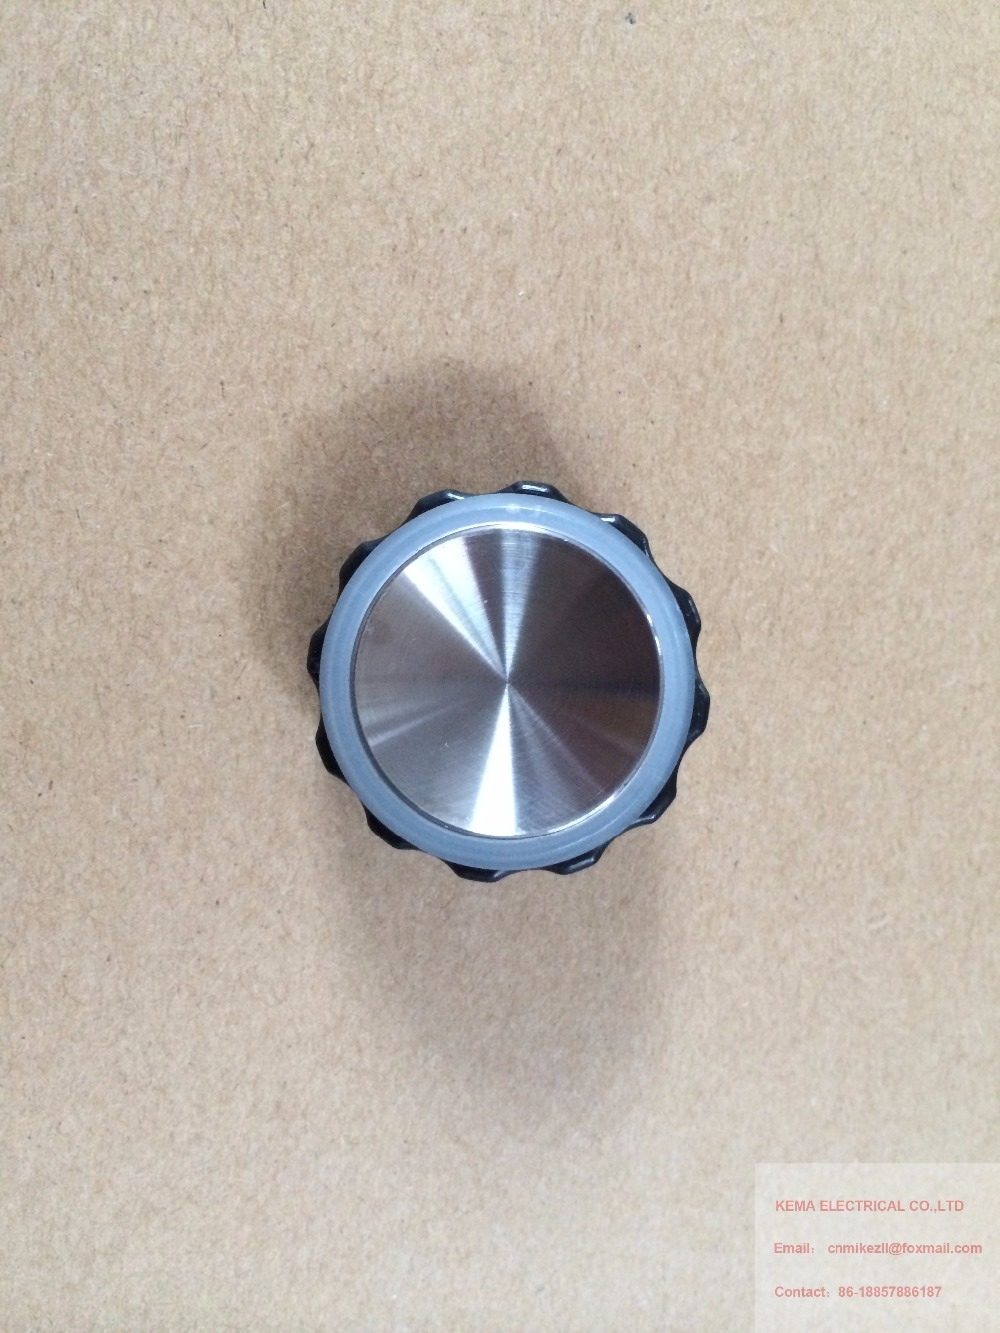 Br27c High Quality Standard Elevator Push Button A311 Button Elevator Parts Free Shipping 2pcs/lot